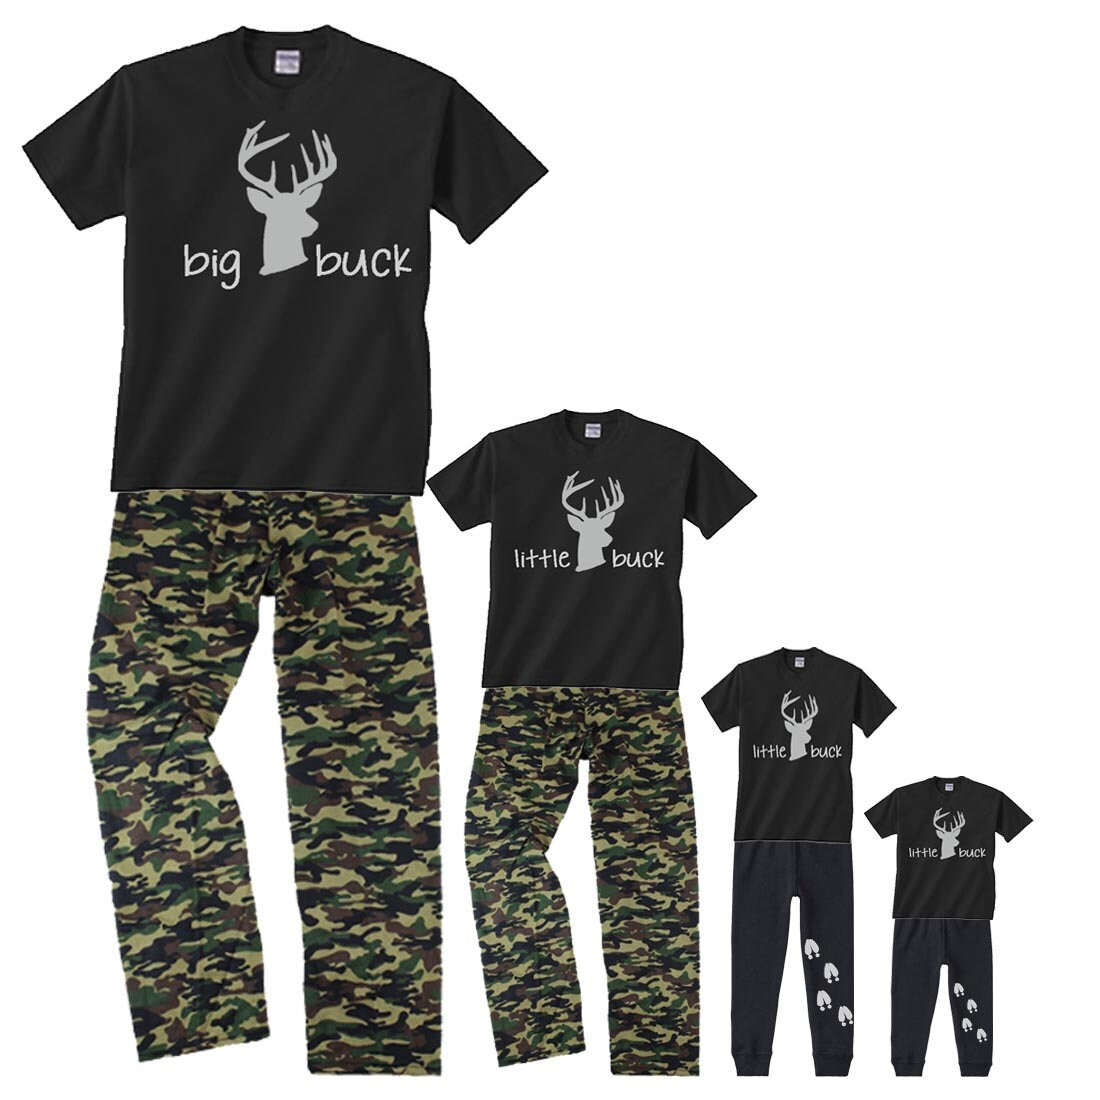 BIG Buck LITTLE Buck Father Son Child Matching Pajamas with  db4230f8f